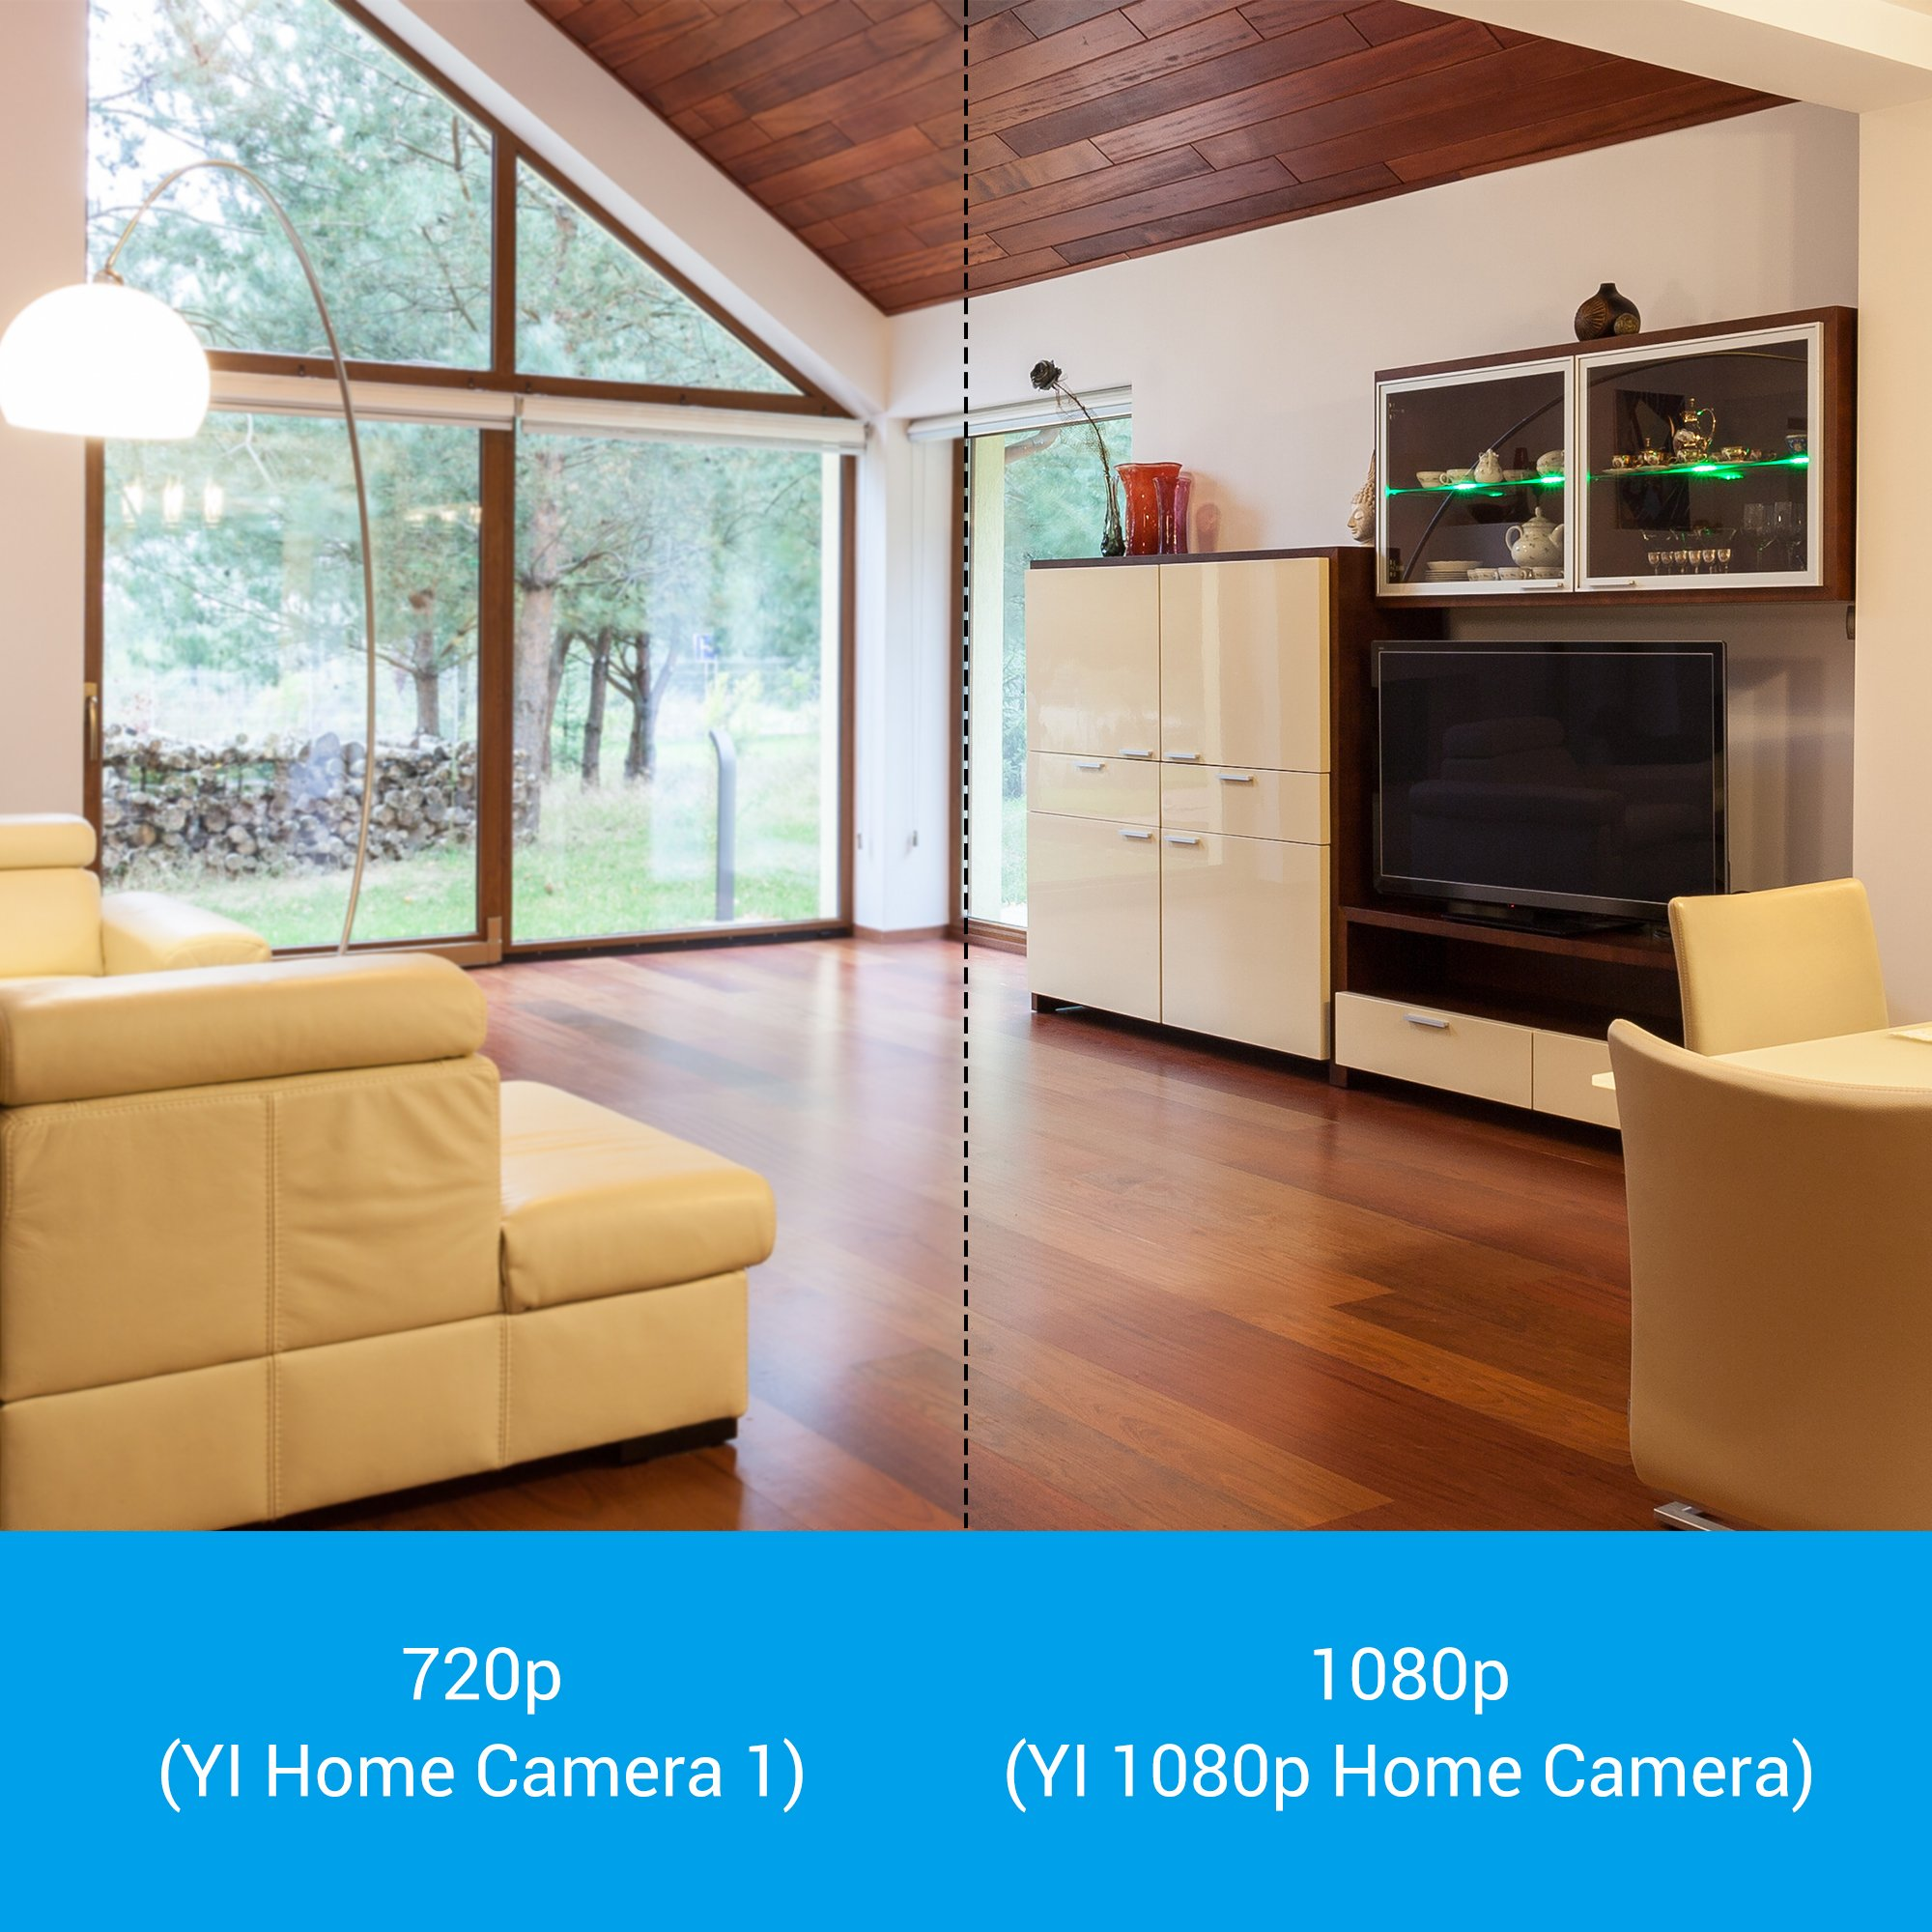 YI 1080p Home Camera, Indoor IP Security Surveillance System with Night Vision for Home/Office/Baby/Nanny/Pet Monitor with iOS, Android App - Cloud Service Available by YI (Image #4)